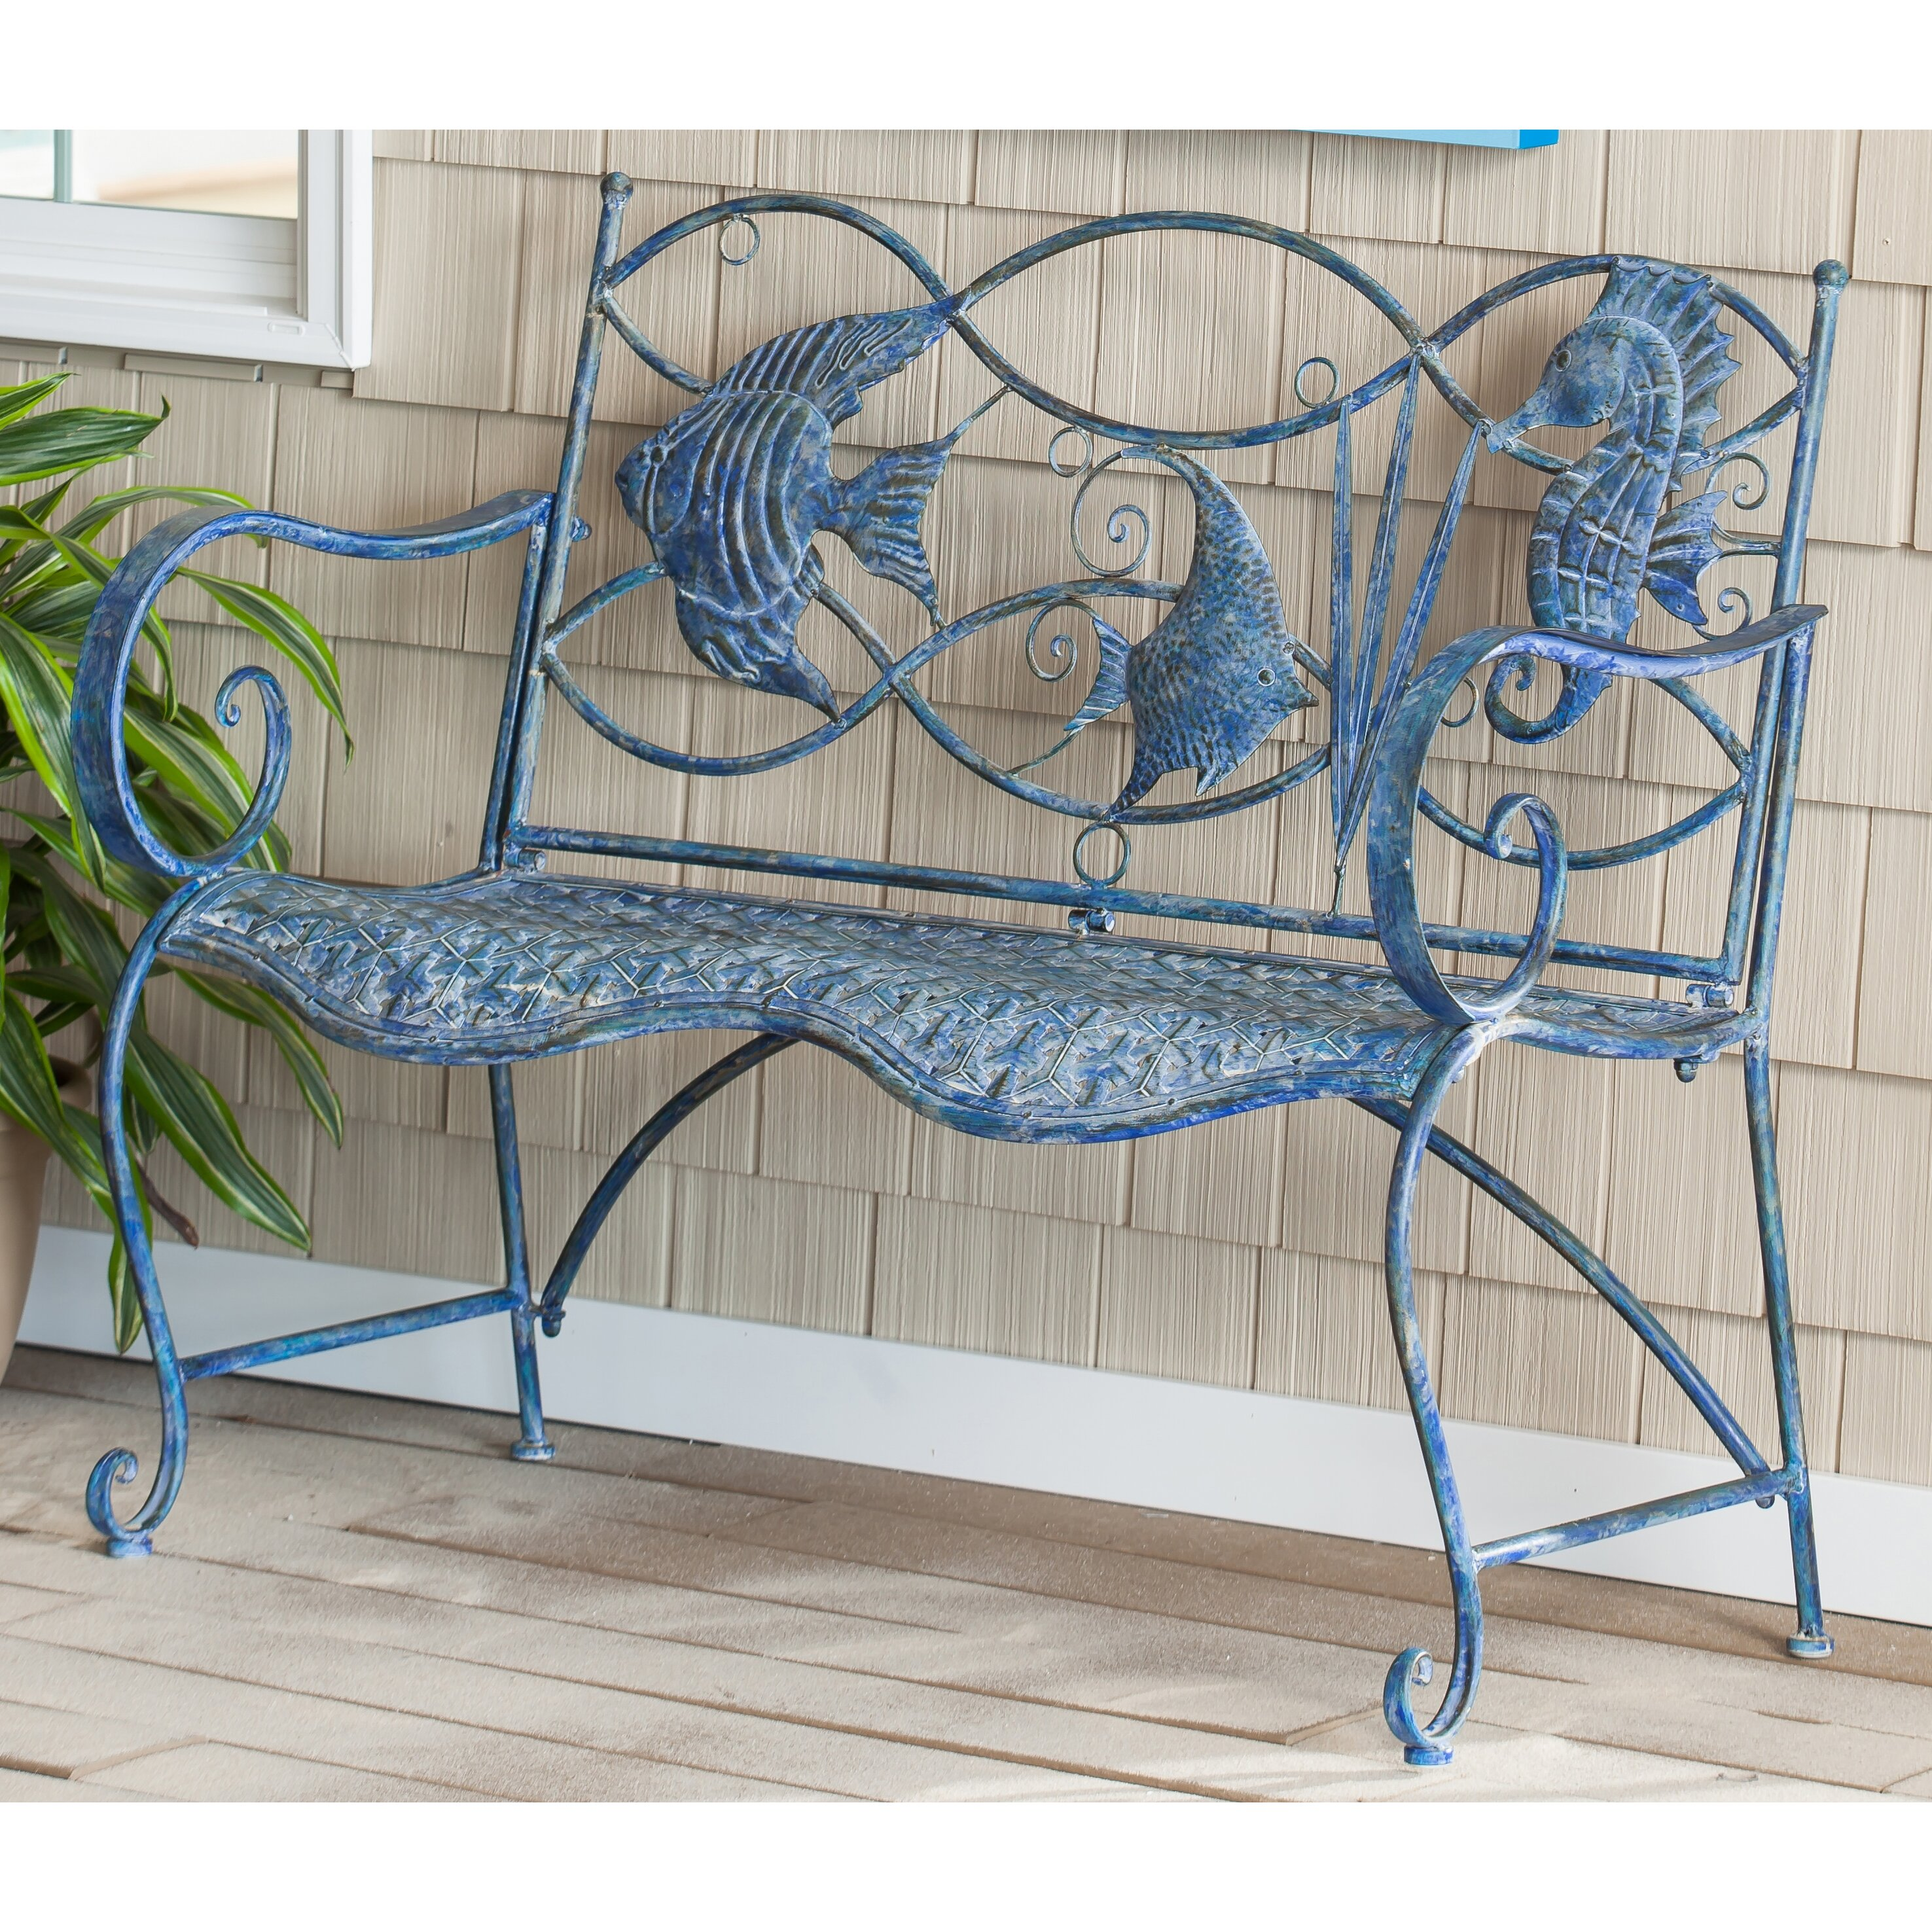 All glass dining room table - Beachcrest Home Darien Blue Fish Metal Garden Bench Amp Reviews